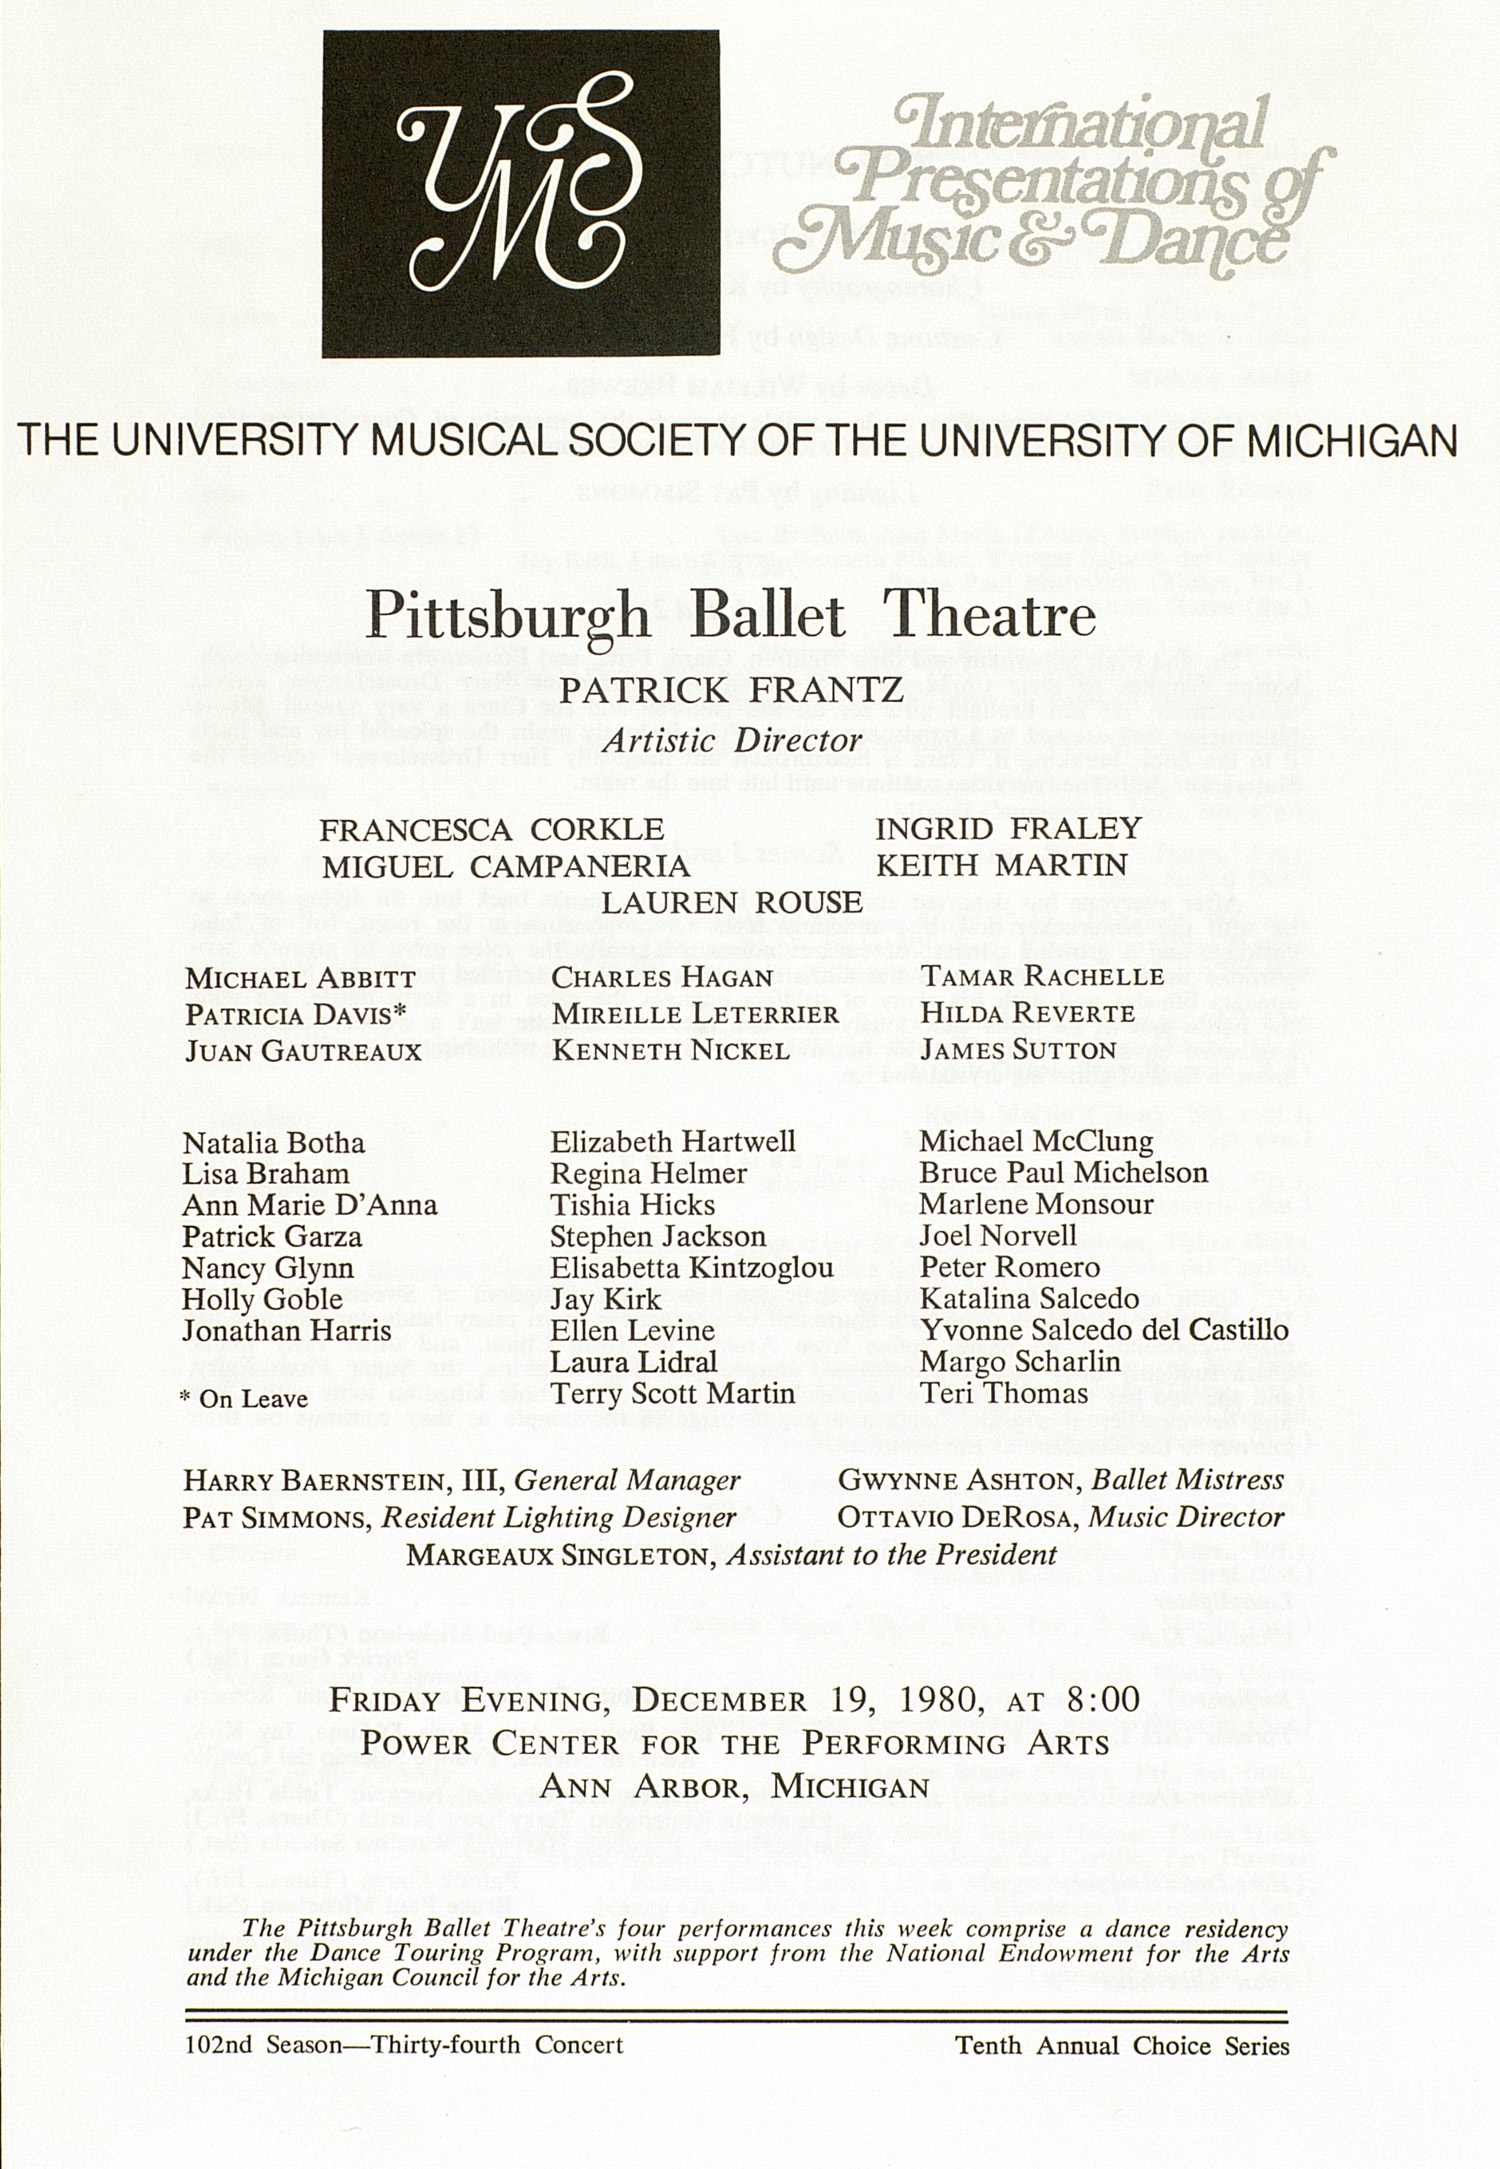 UMS Concert Program, December 19, 1980: International Presentations Of Music & Dance -- Pittsburgh Ballet Theatre image